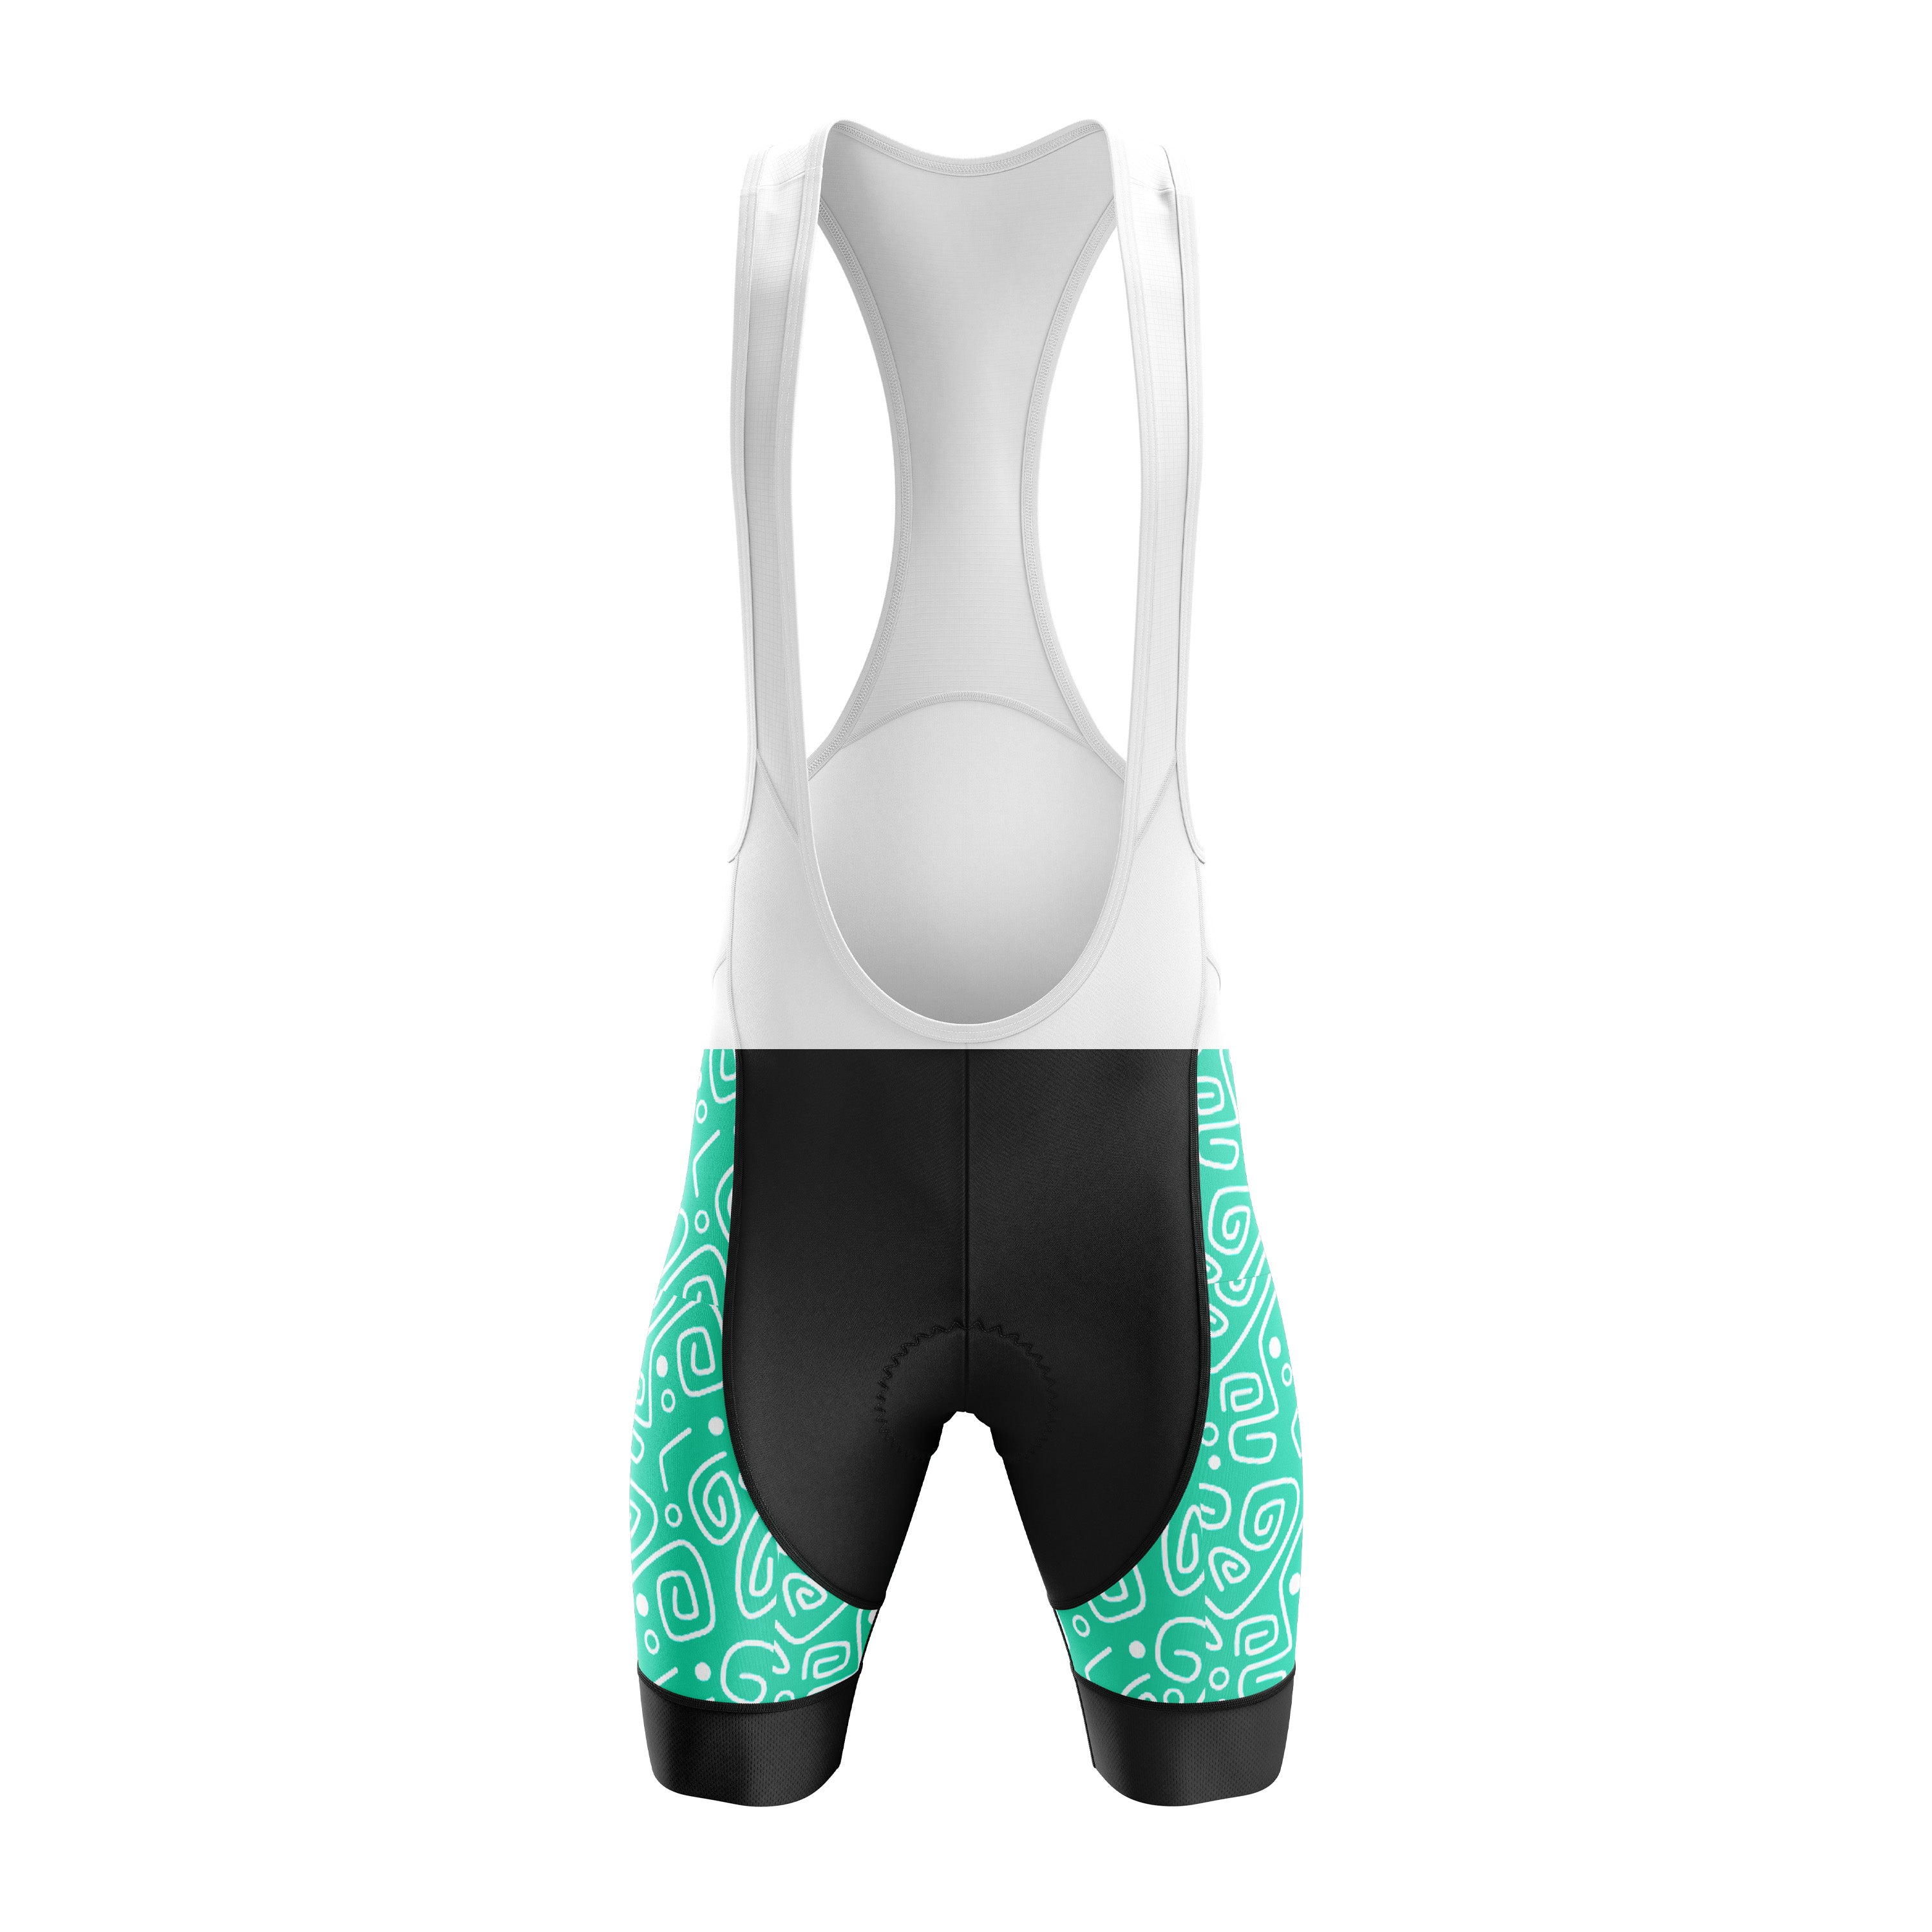 Aqua Marine Cycling Bib Shorts